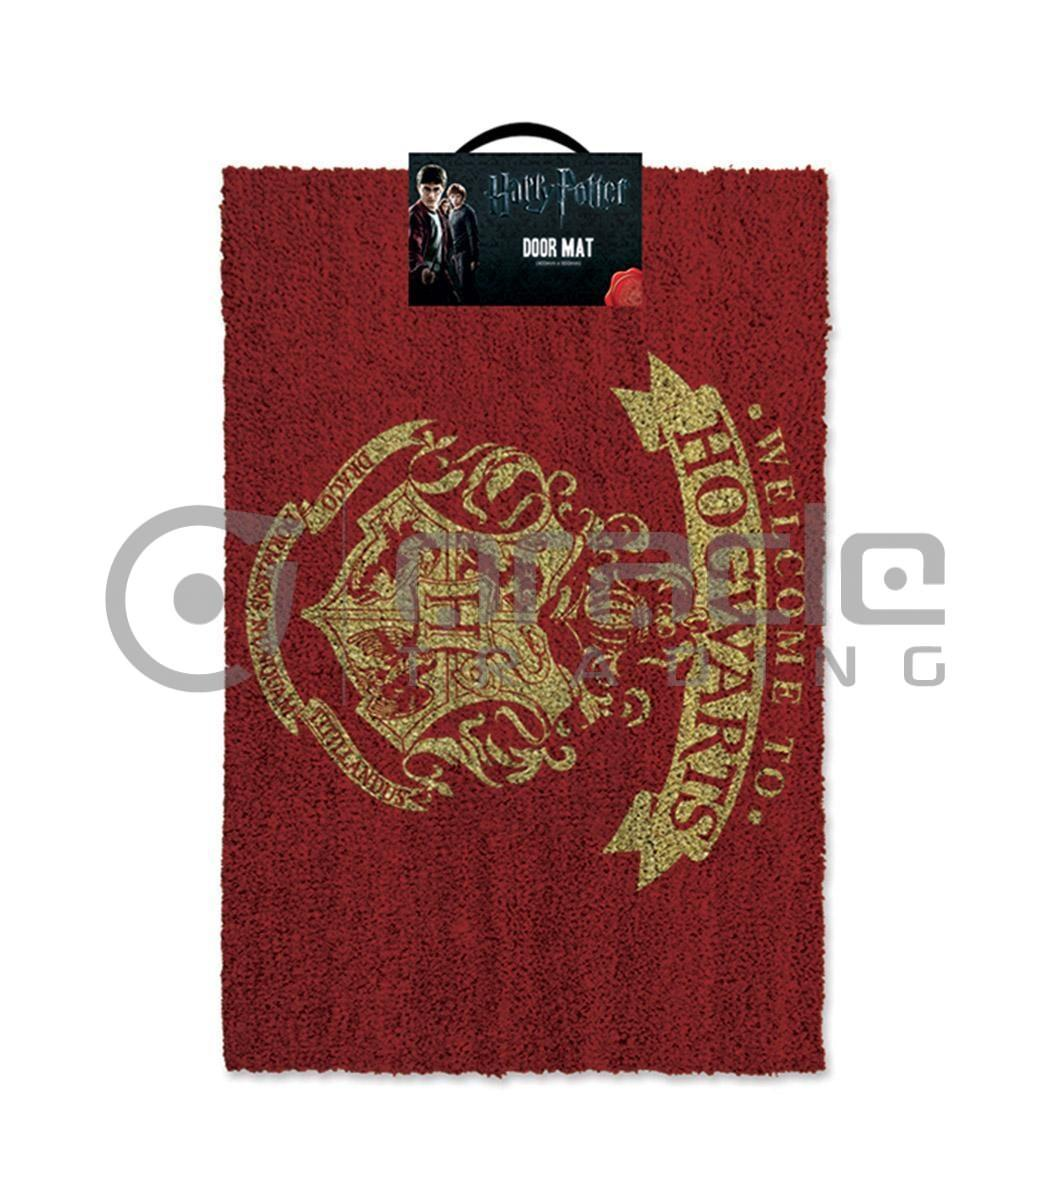 Harry Potter Doormat - Welcome to Hogwarts